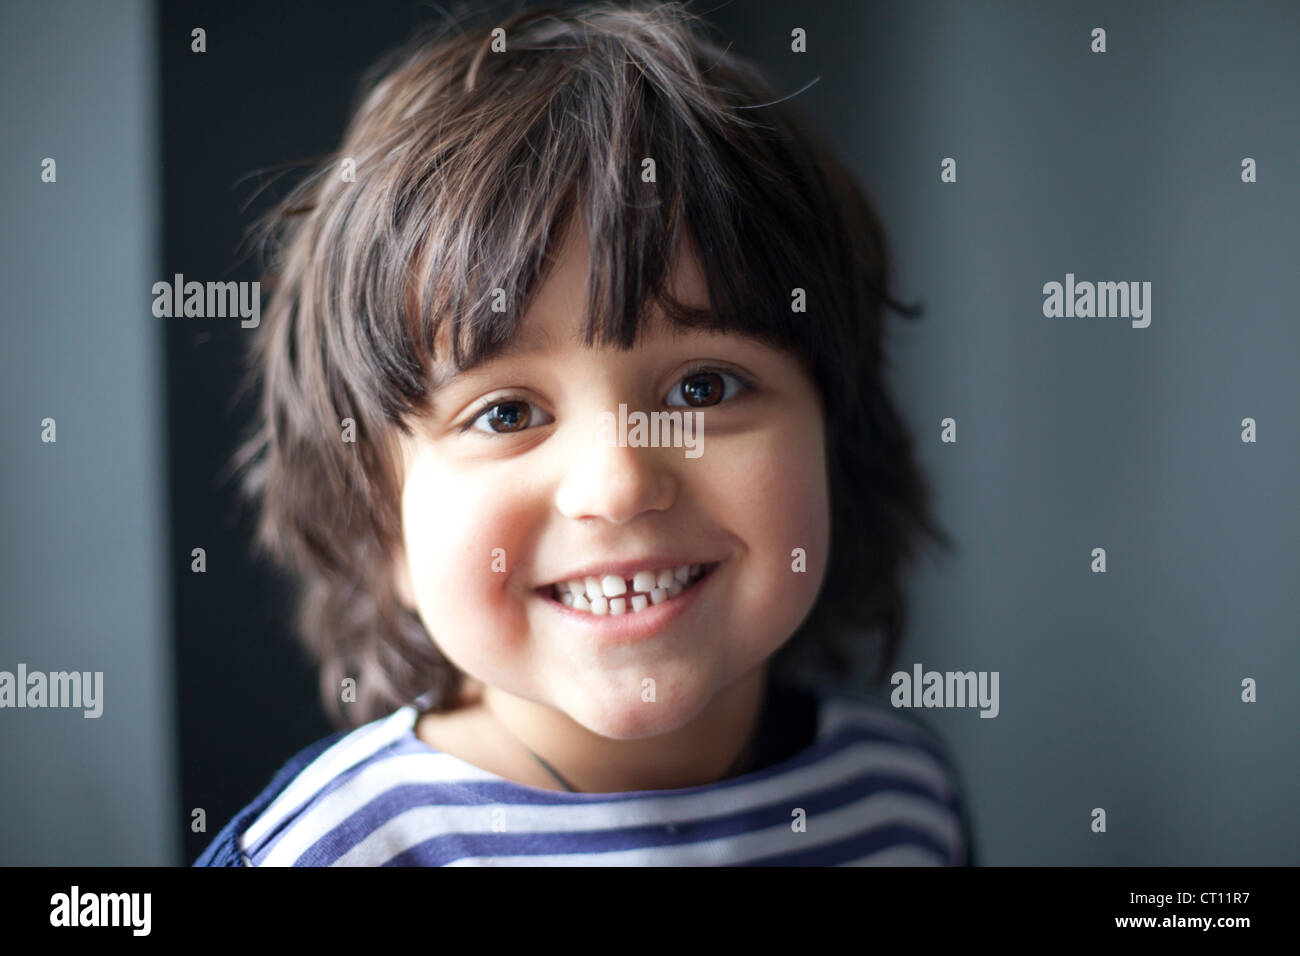 Close up of smiling boys face Stock Photo